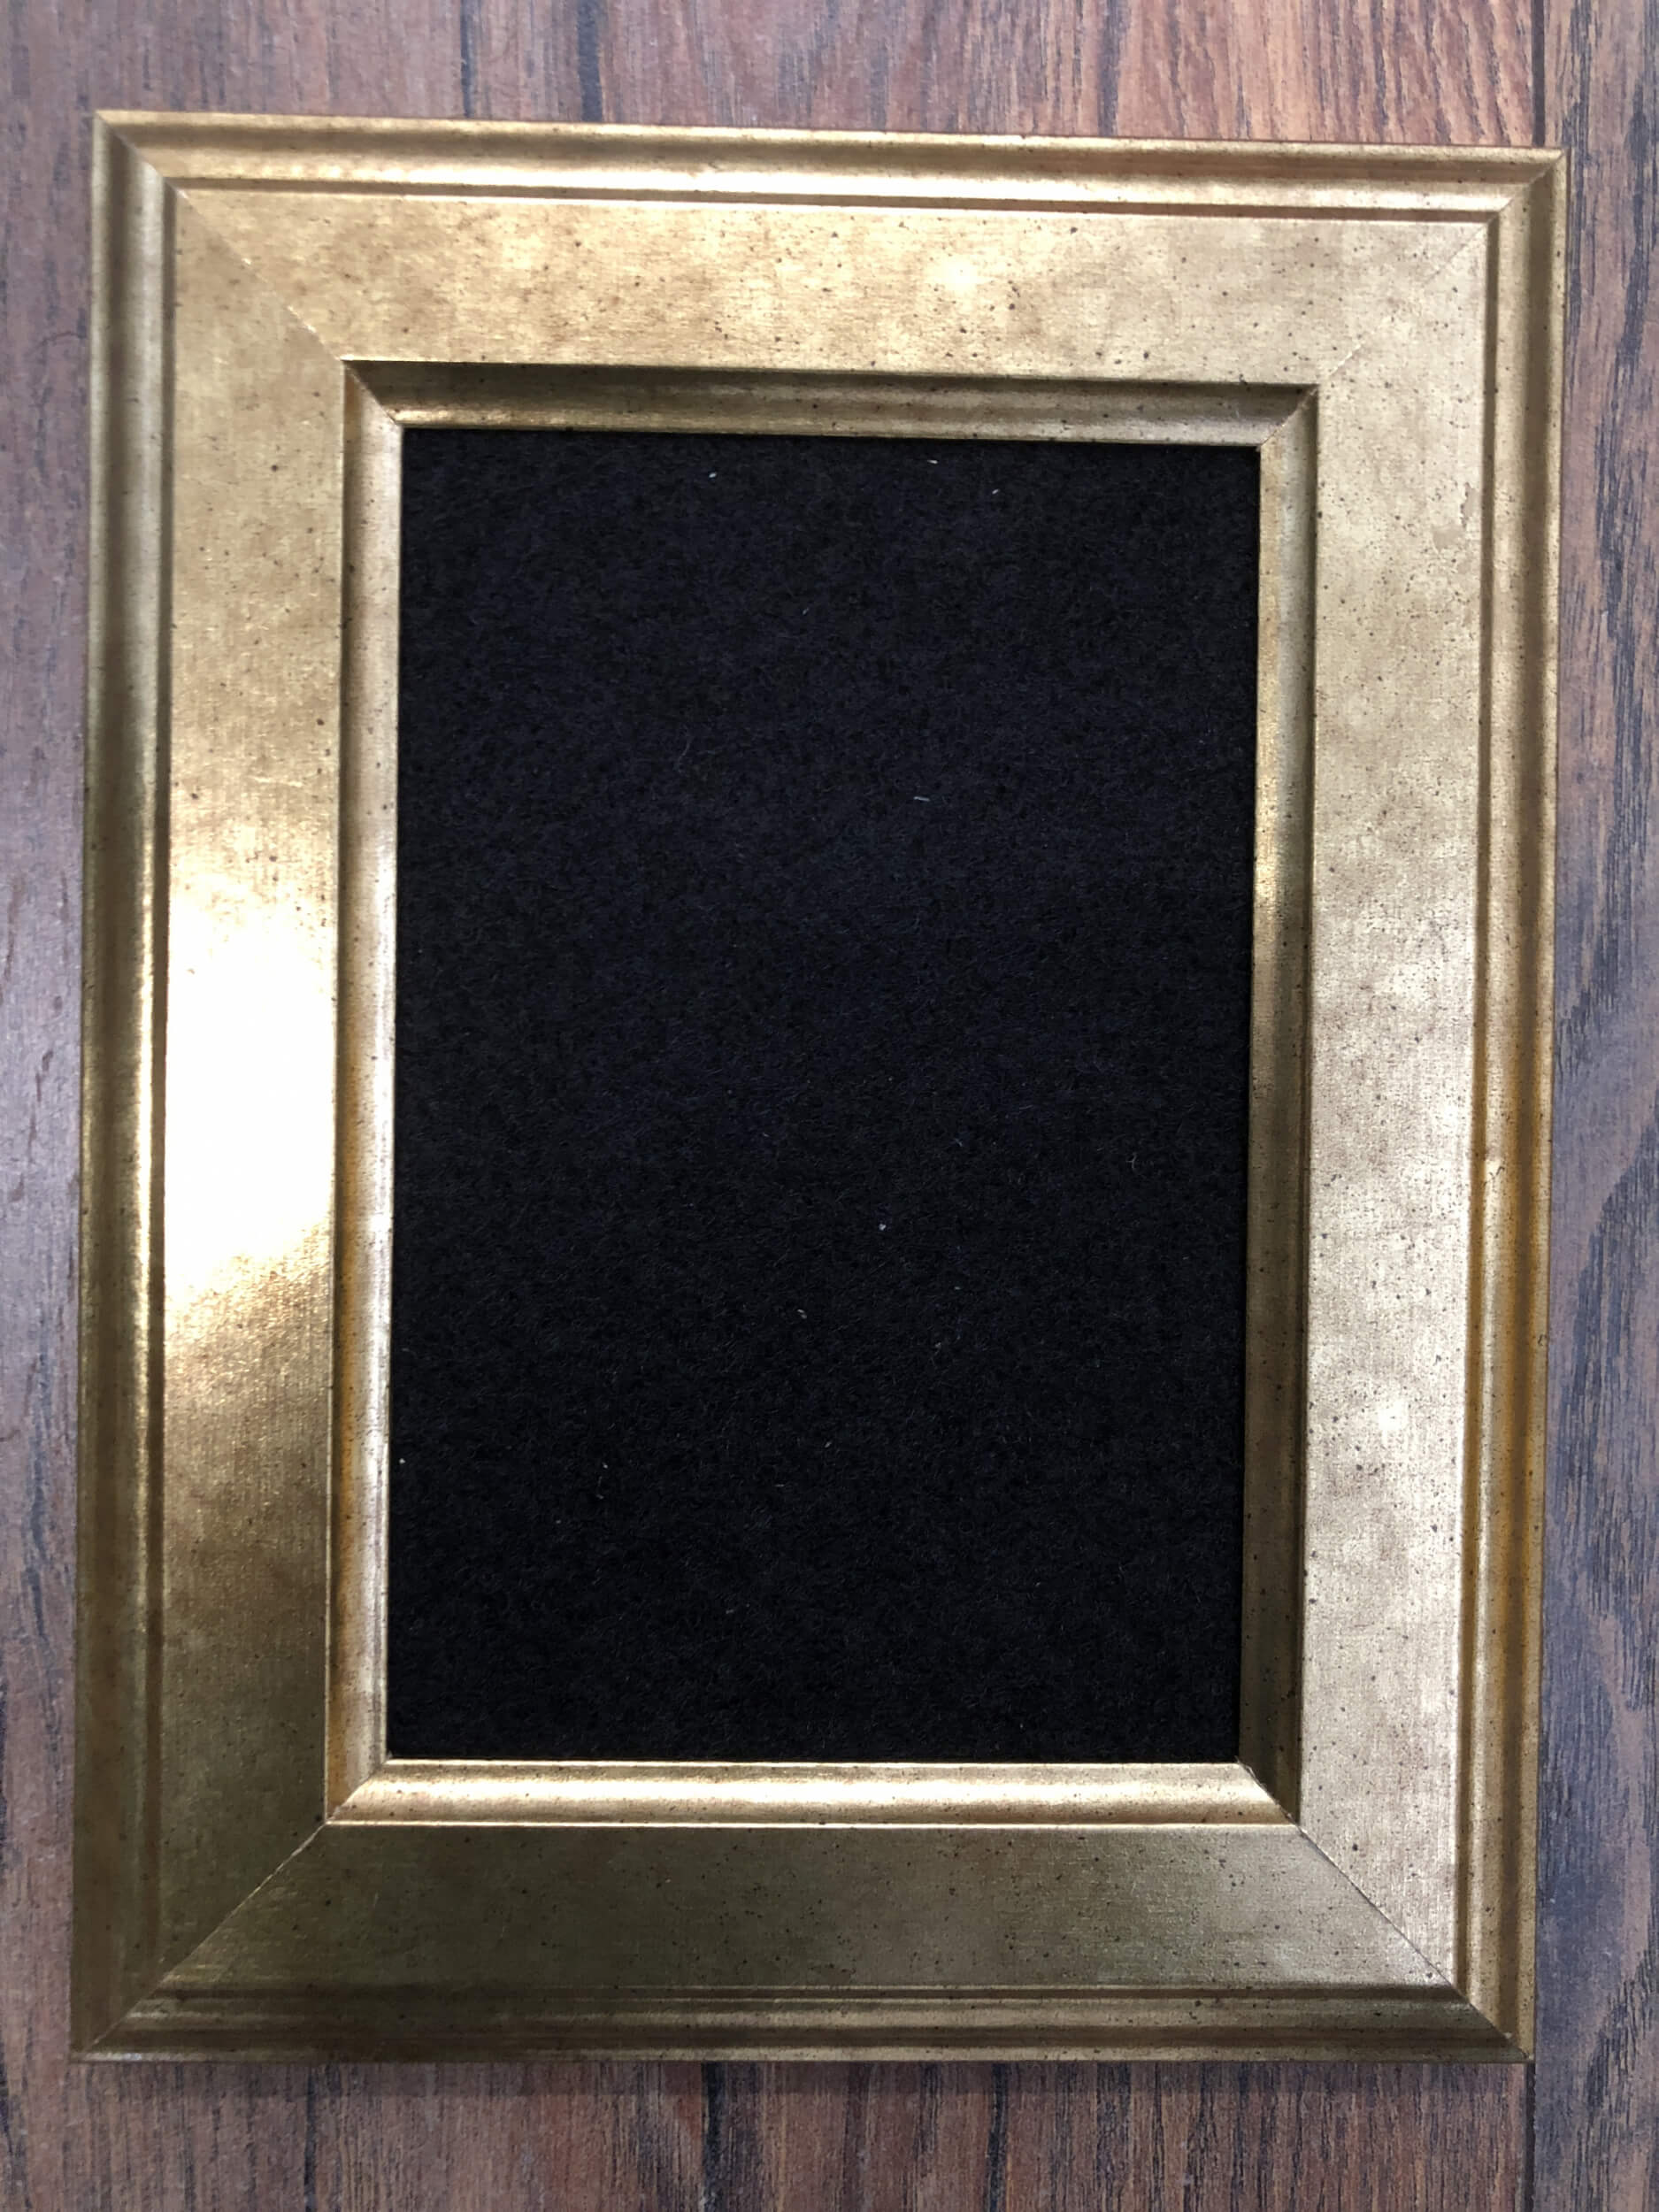 VIRSEPATCH frame with velour fabric for patches, gold coloured